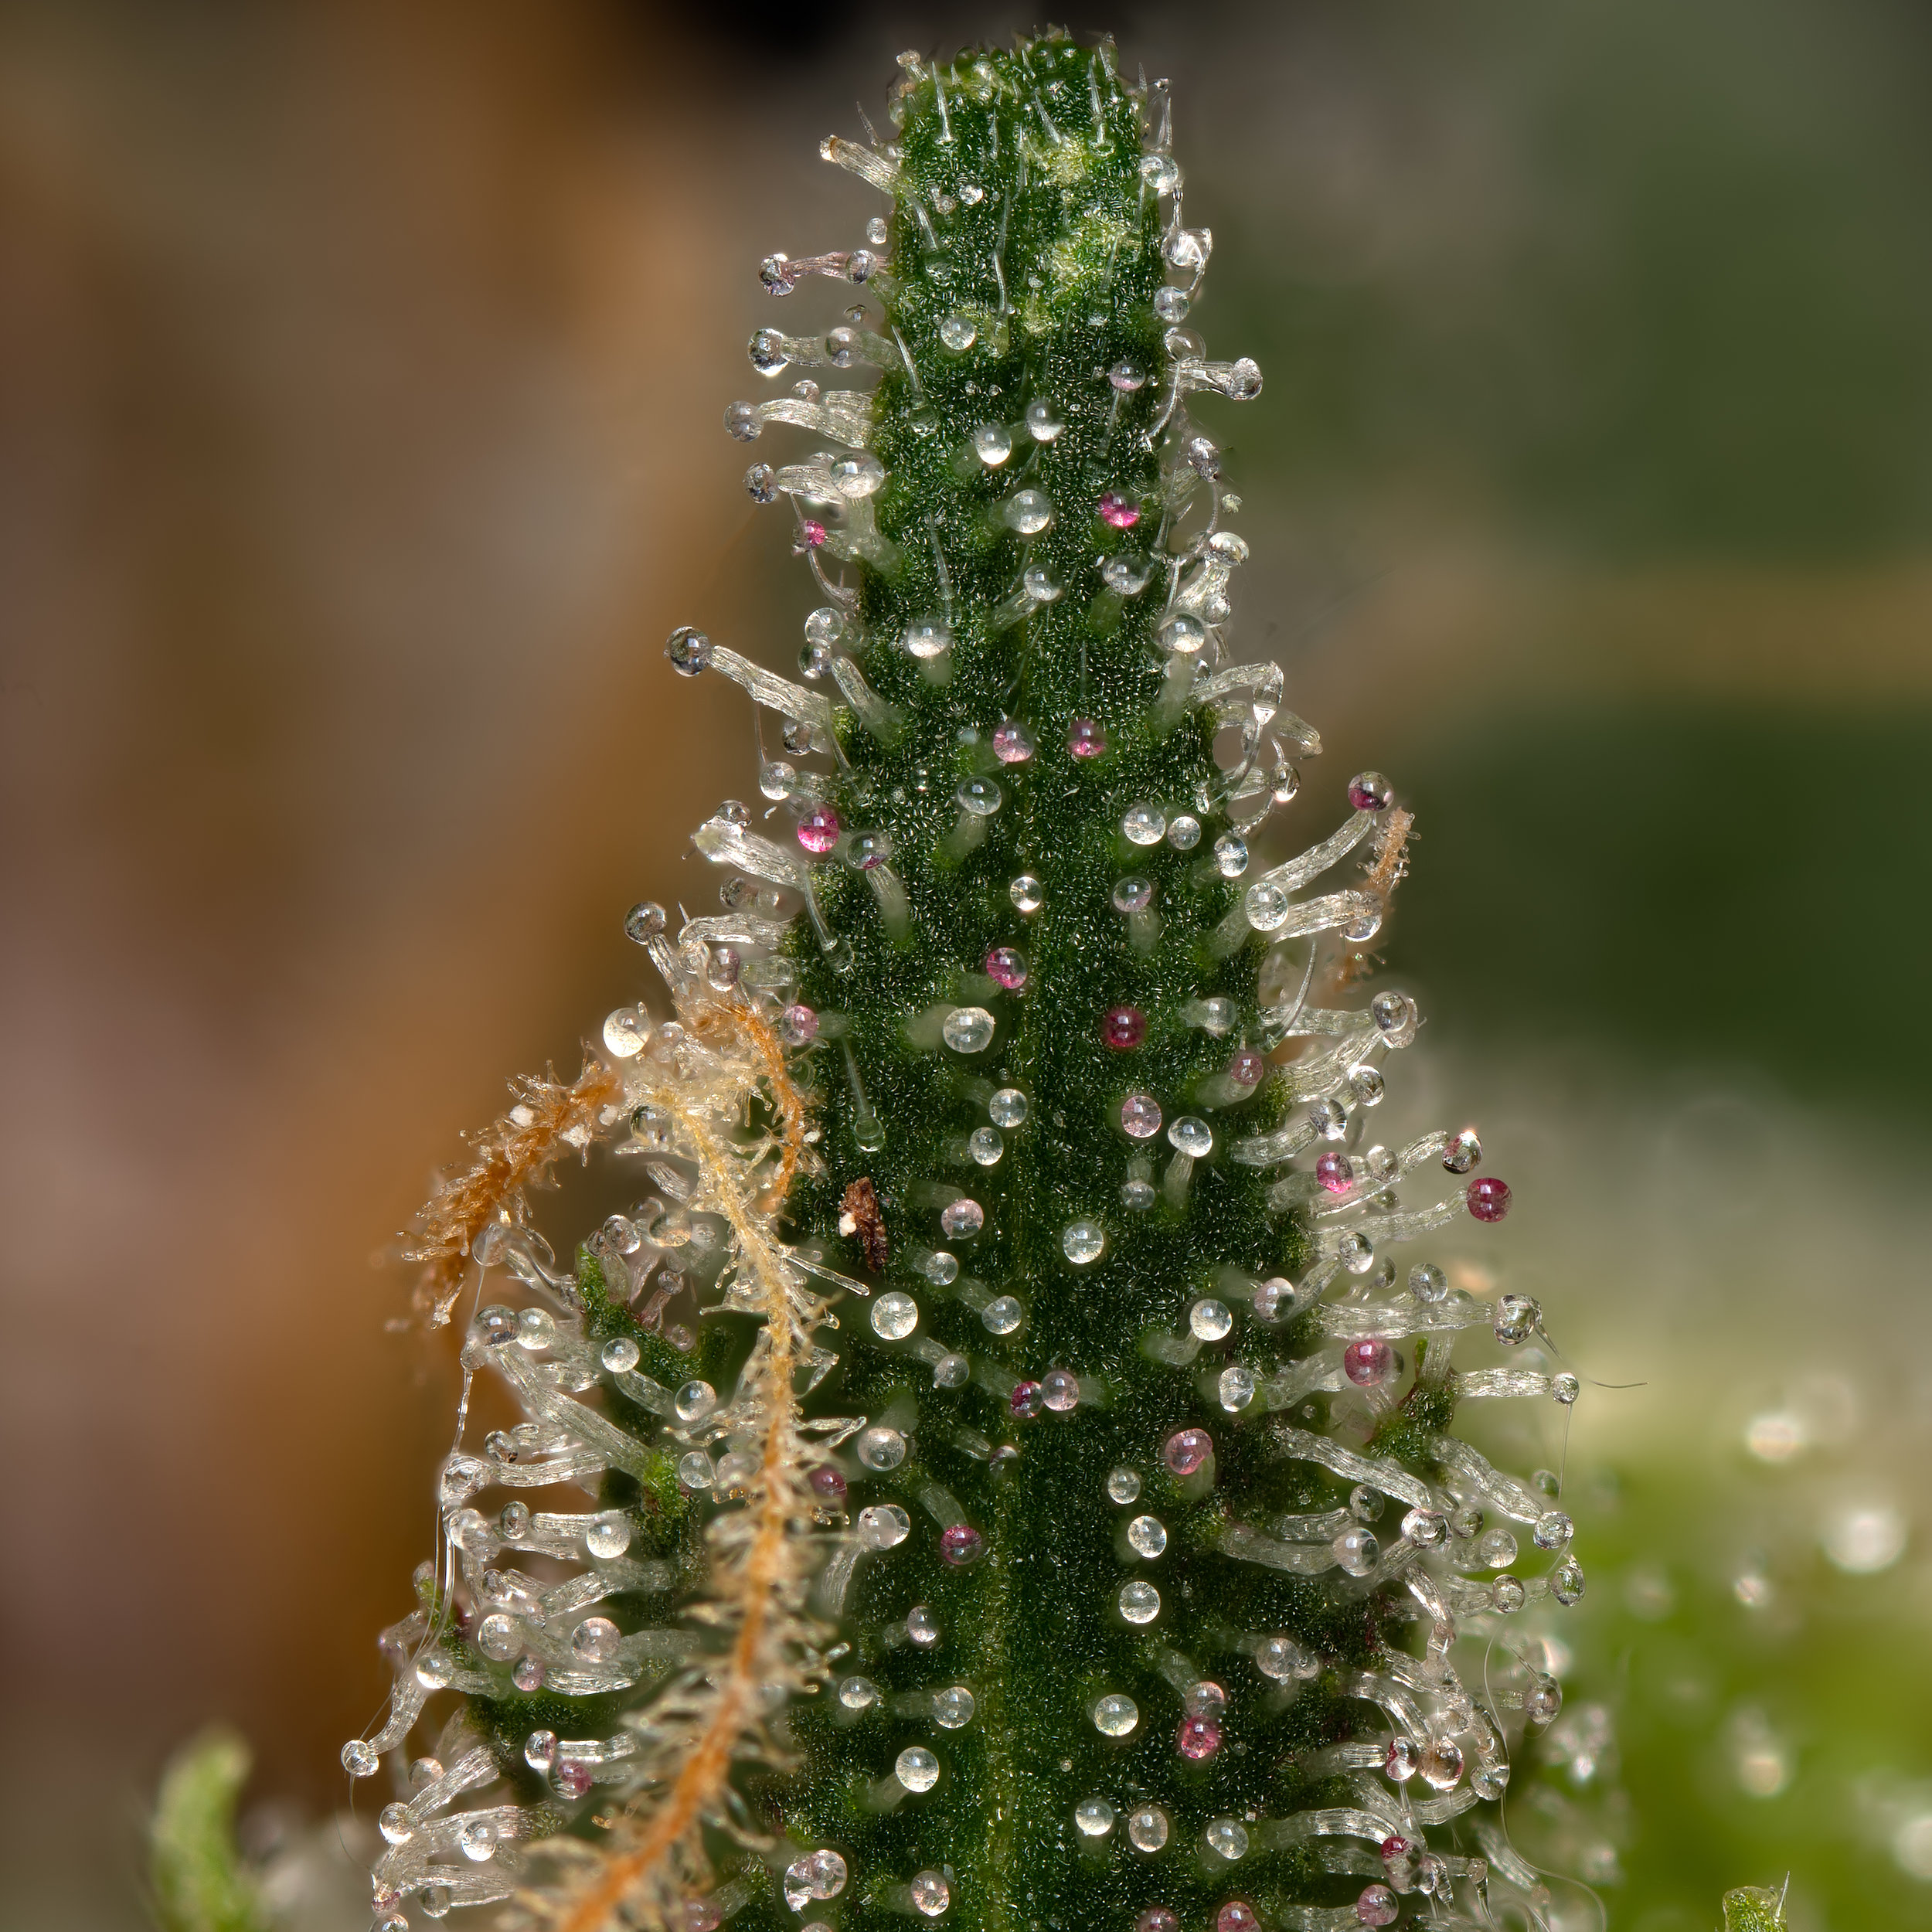 Cannabis leaf with trichomes